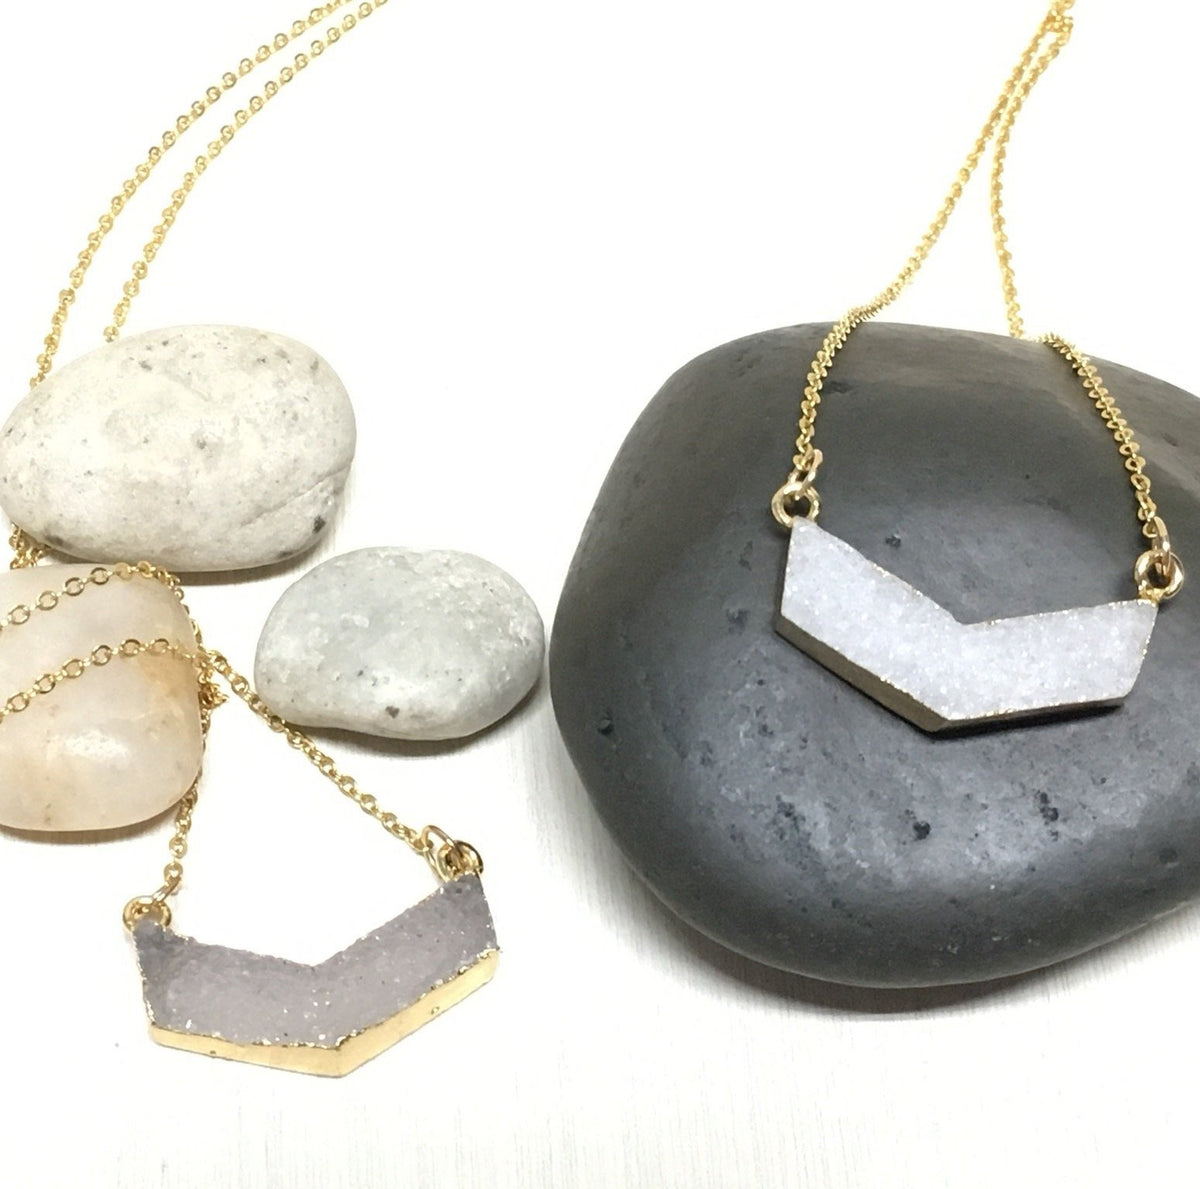 Chevron Druzy Necklace - Infinity Headbands by Ambrosia Designs